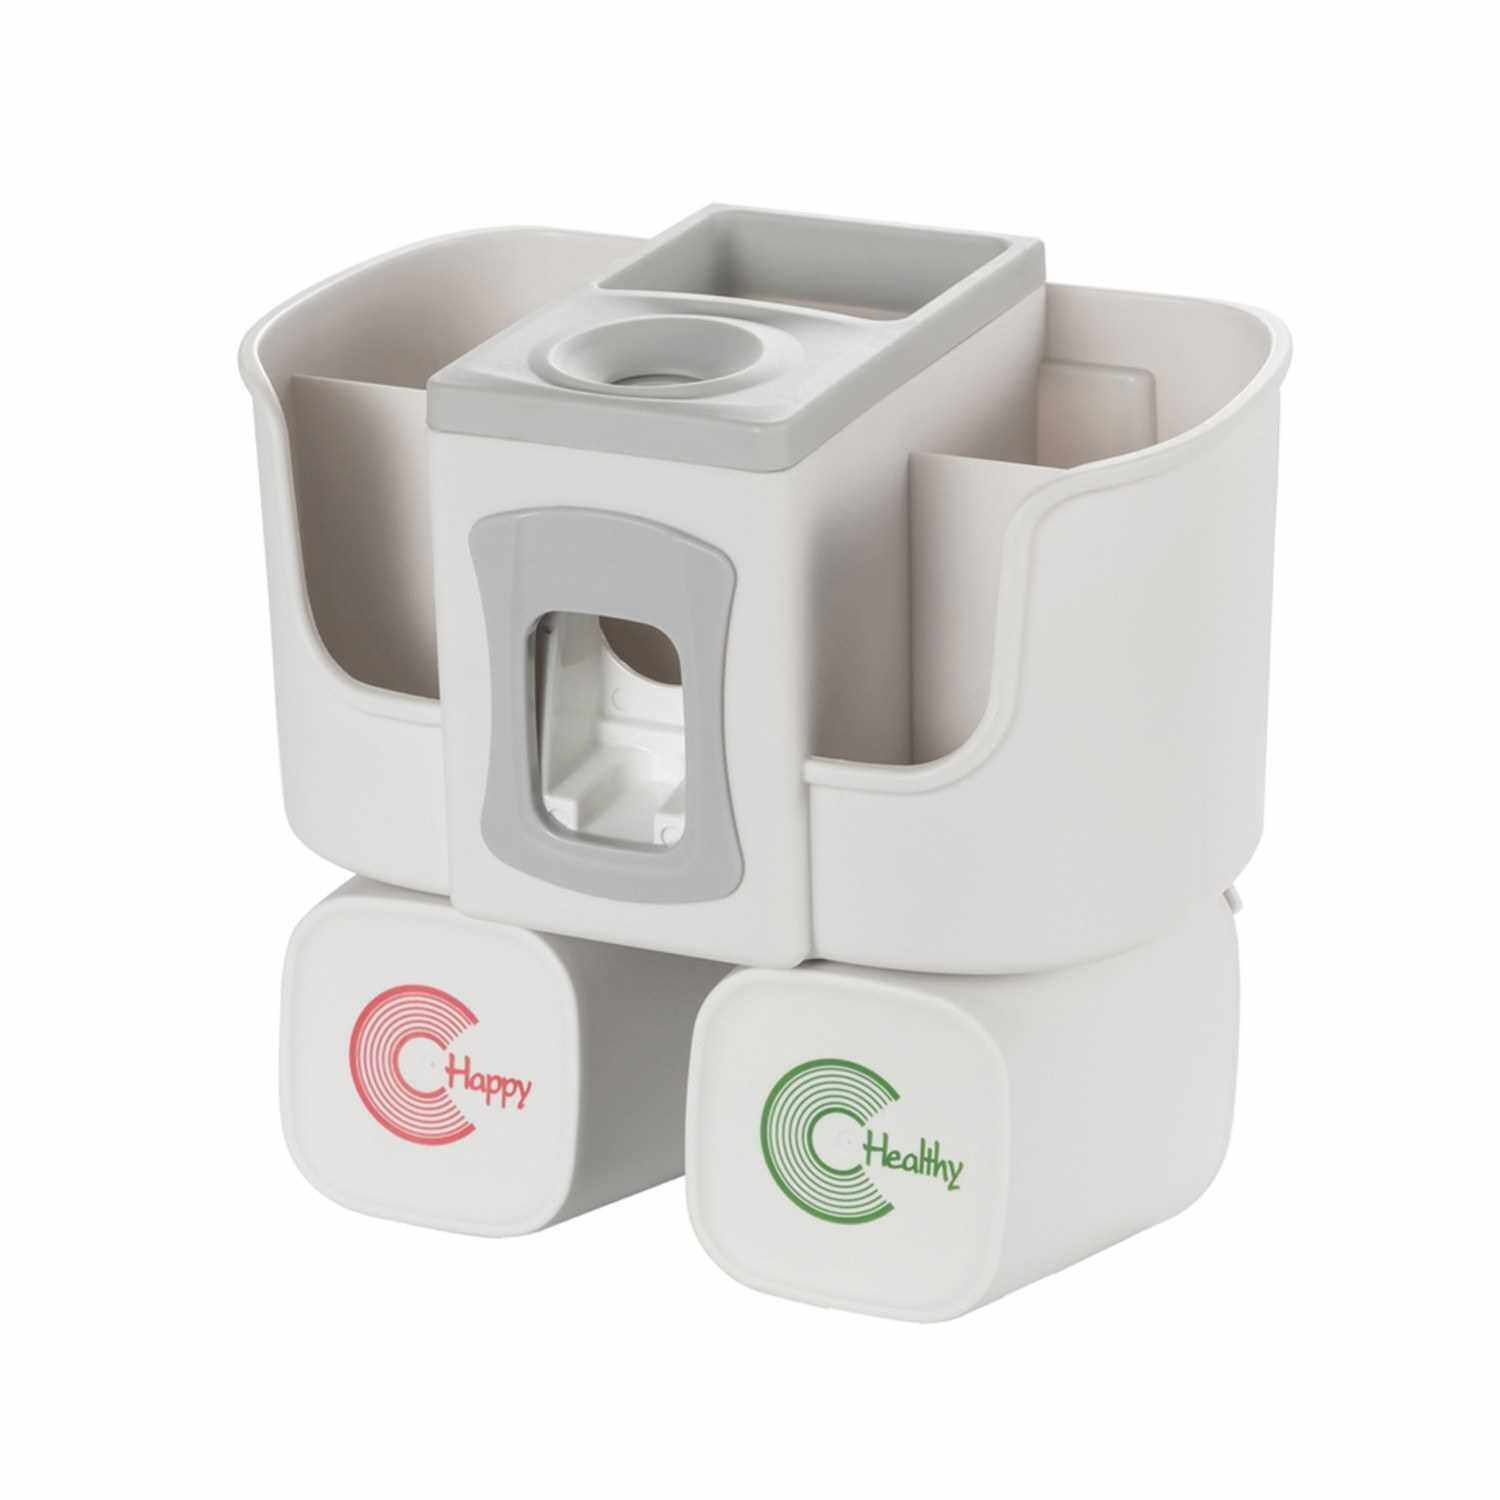 Automatic Toothpaste Dispenser Toothbrush Holder Multifunctional No Drilling Wall-Mounted Space-Saving Toothbrush Hanger and Toothpaste Squeezer Kit Organizer with 2 Cups (White)